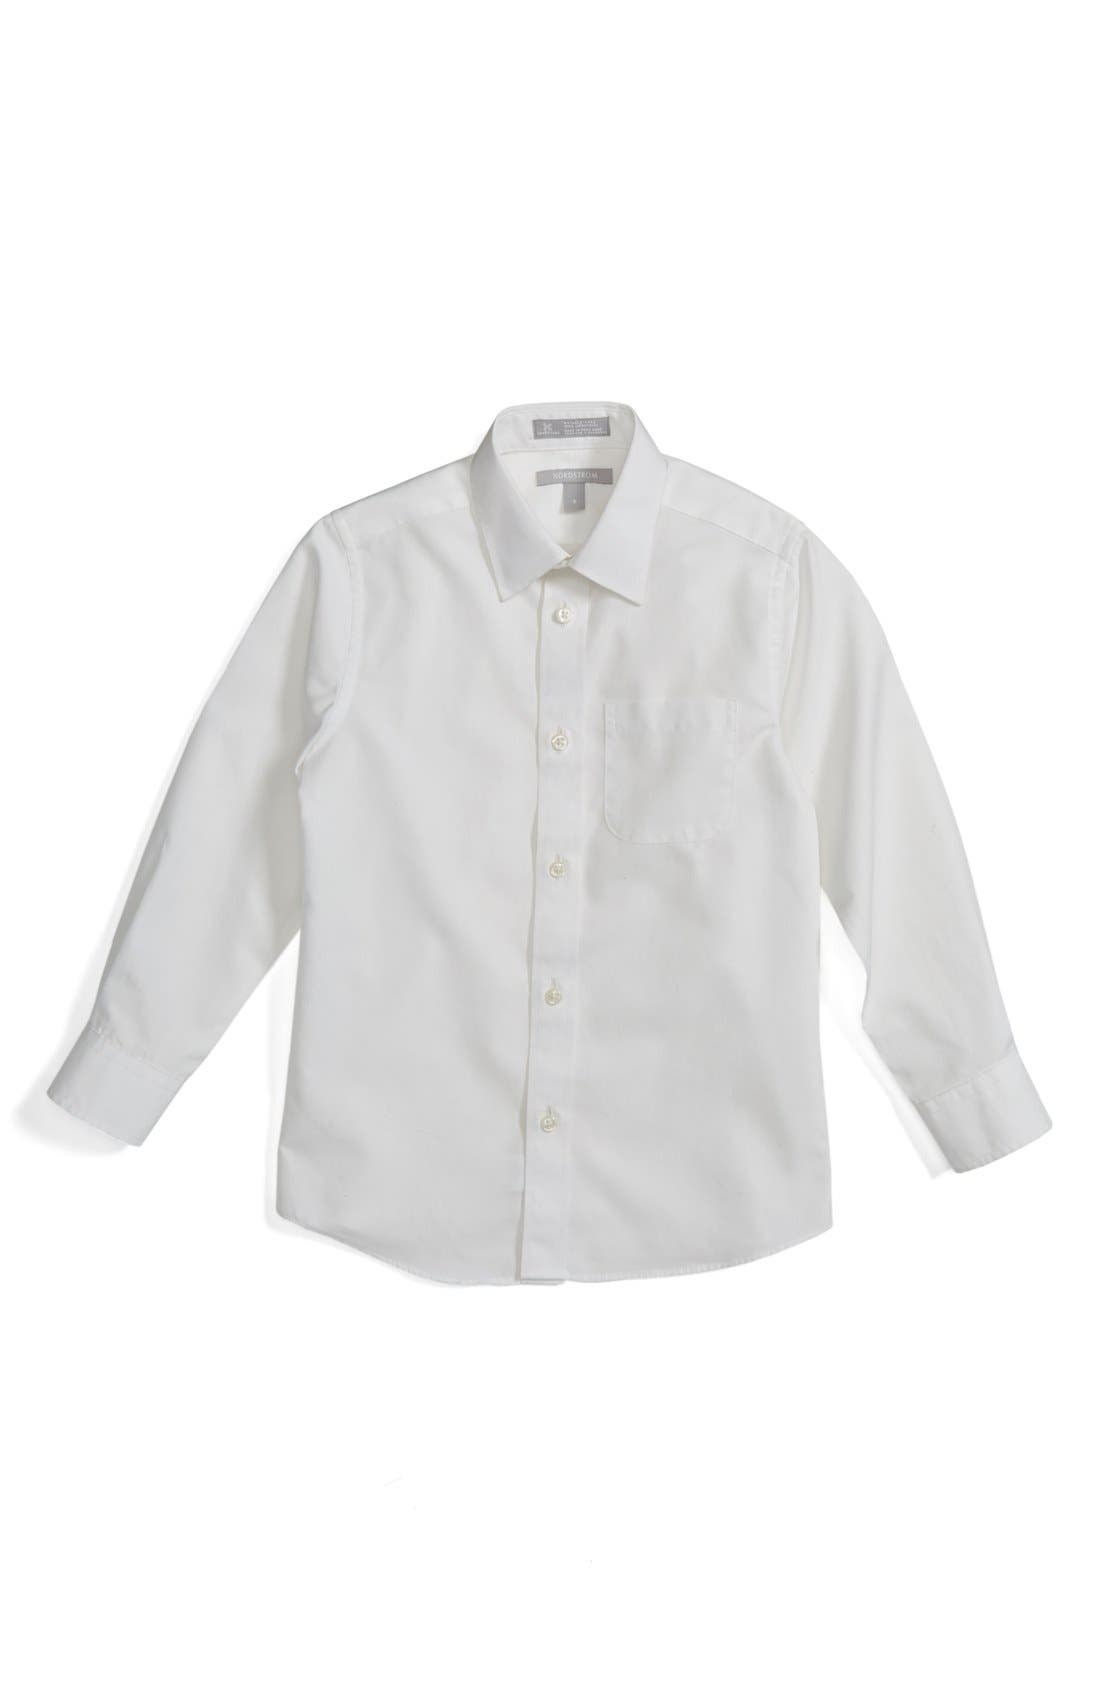 NORDSTROM, Smartcare<sup>™</sup> Dress Shirt, Main thumbnail 1, color, WHITE